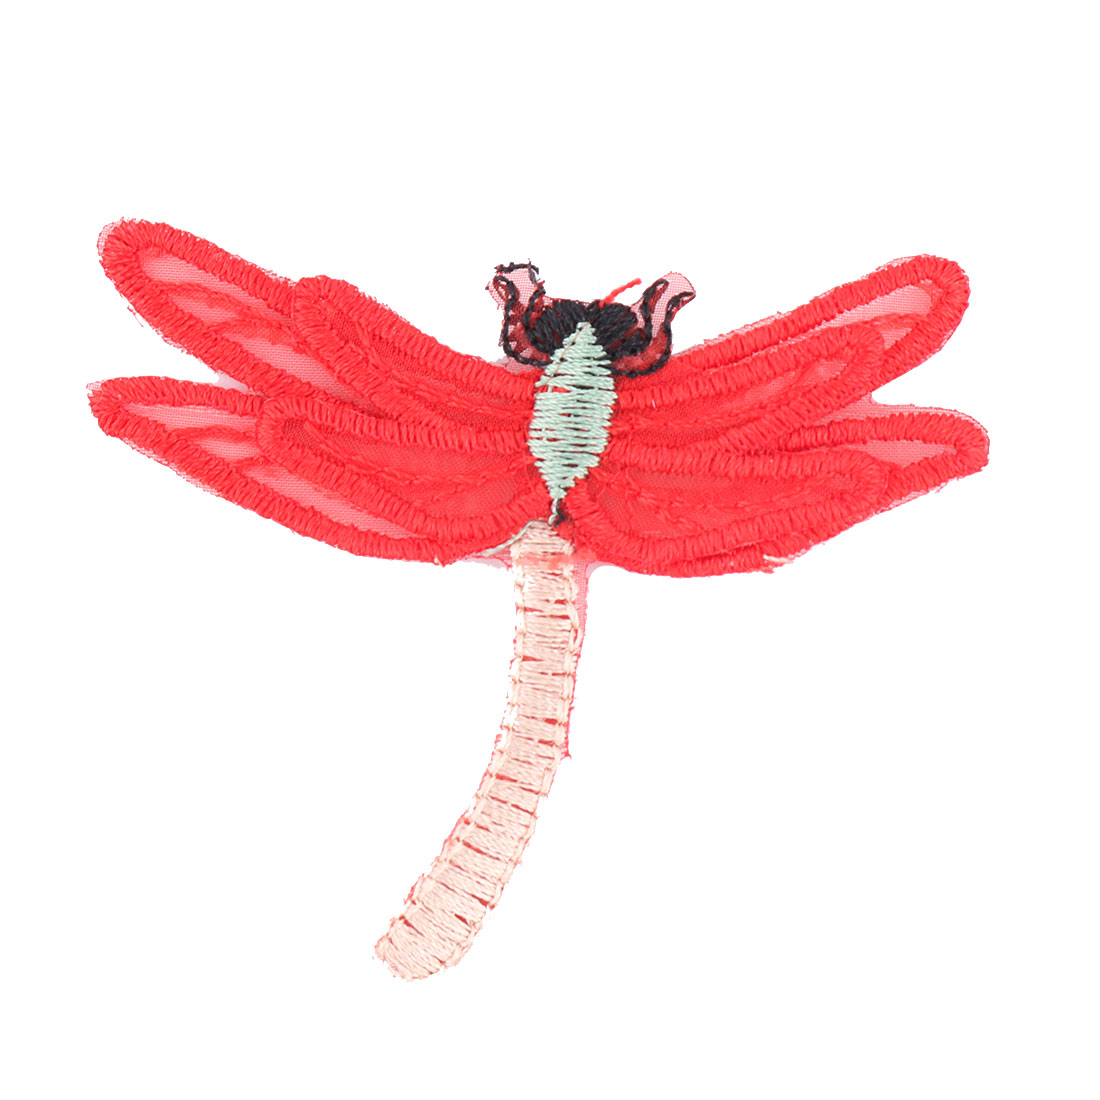 Unique Bargains Home Organza Dragonfly Design Embroidered DIY Clothes Decor Lace Applique Red